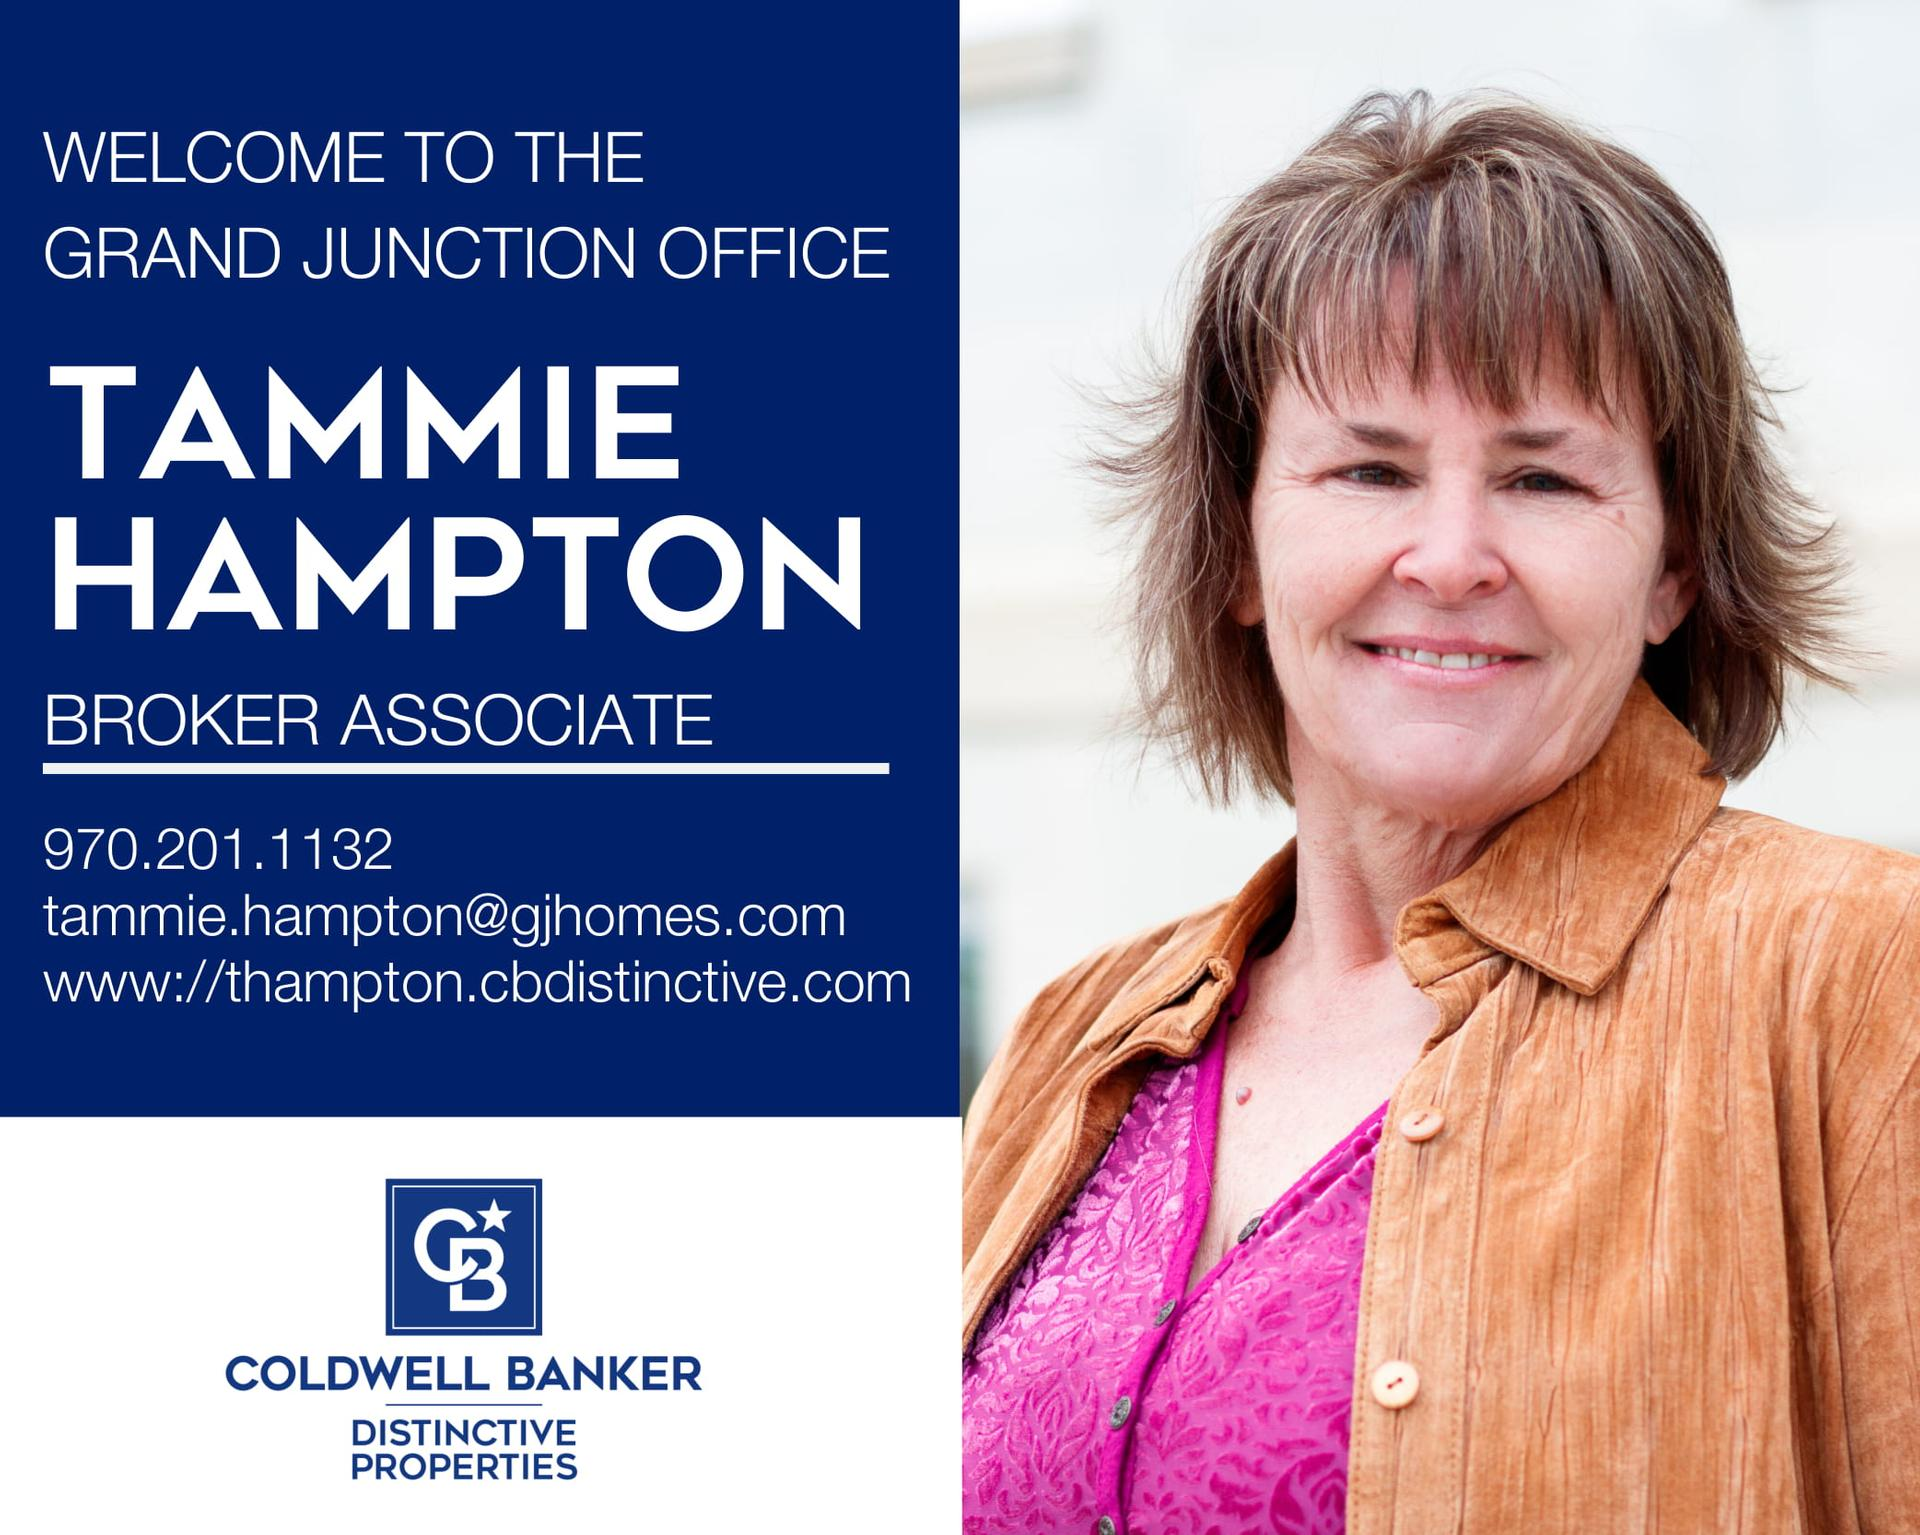 Please help us welcome Tammie Hampton to the Wingerter Team and to our Coldwell Banker family! Main Photo